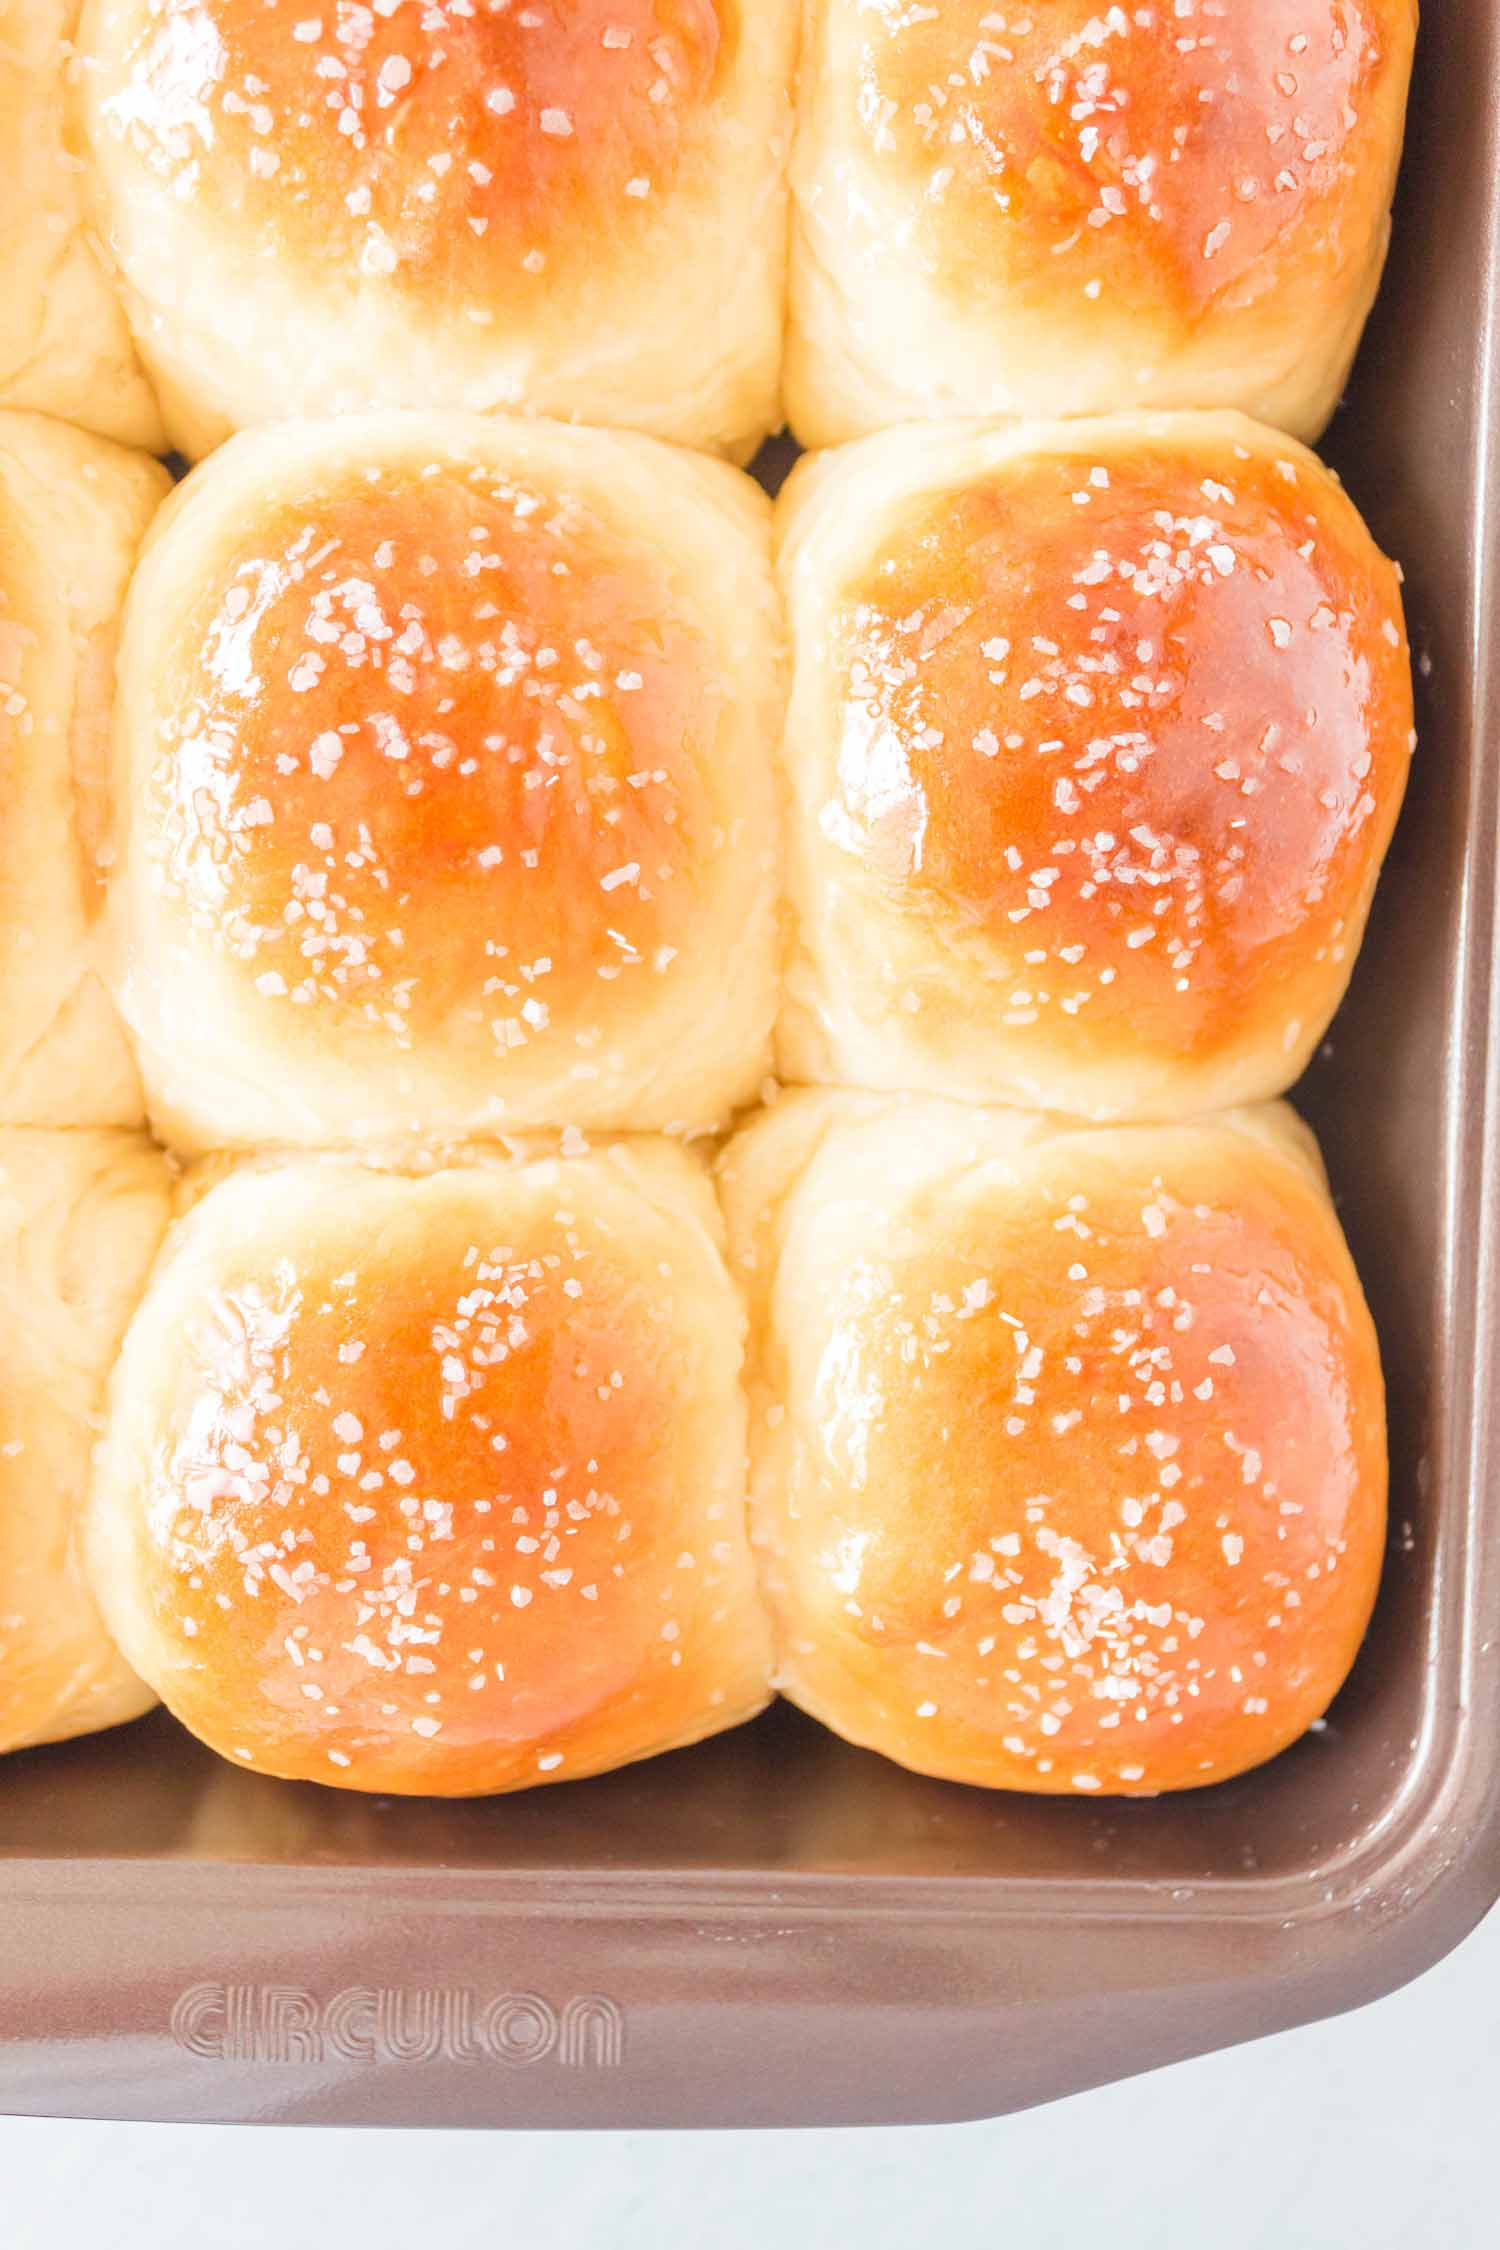 Cooked rolls that have been buttered and salted in a dark nonstick pan.